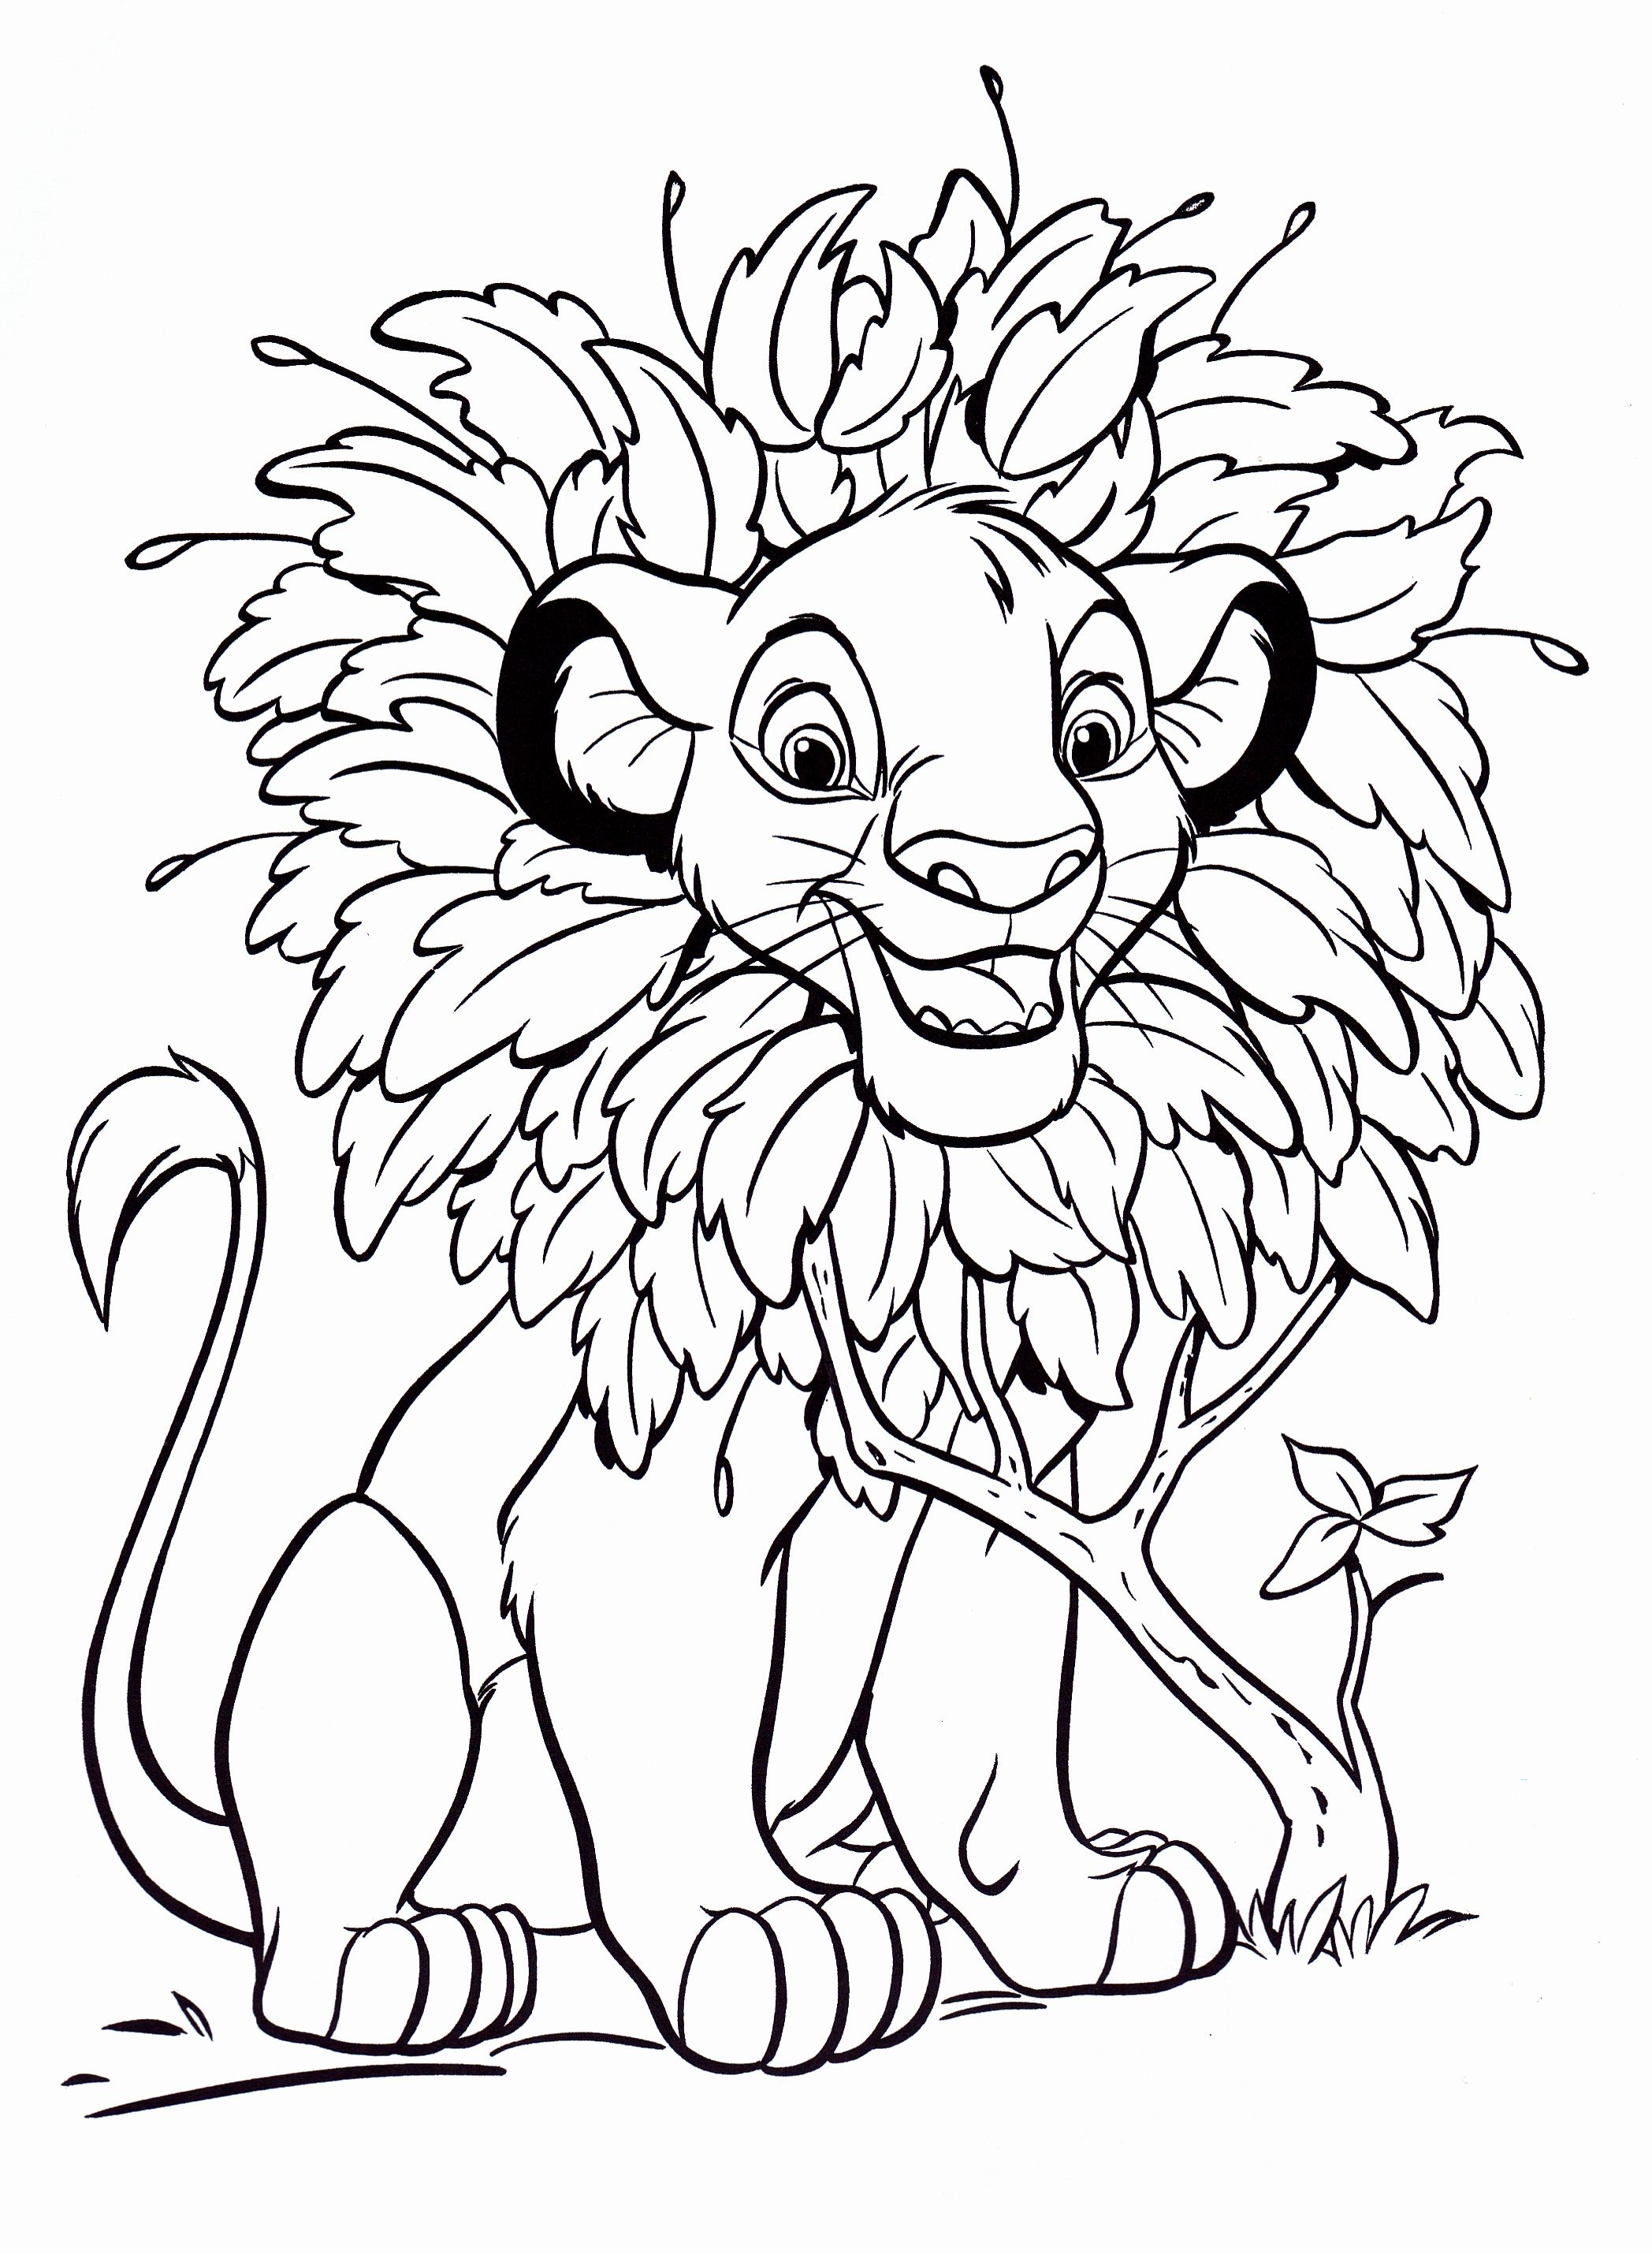 Pin by Pamela Miller on Printables - Coloring Pages ...   colouring pages for adults disney